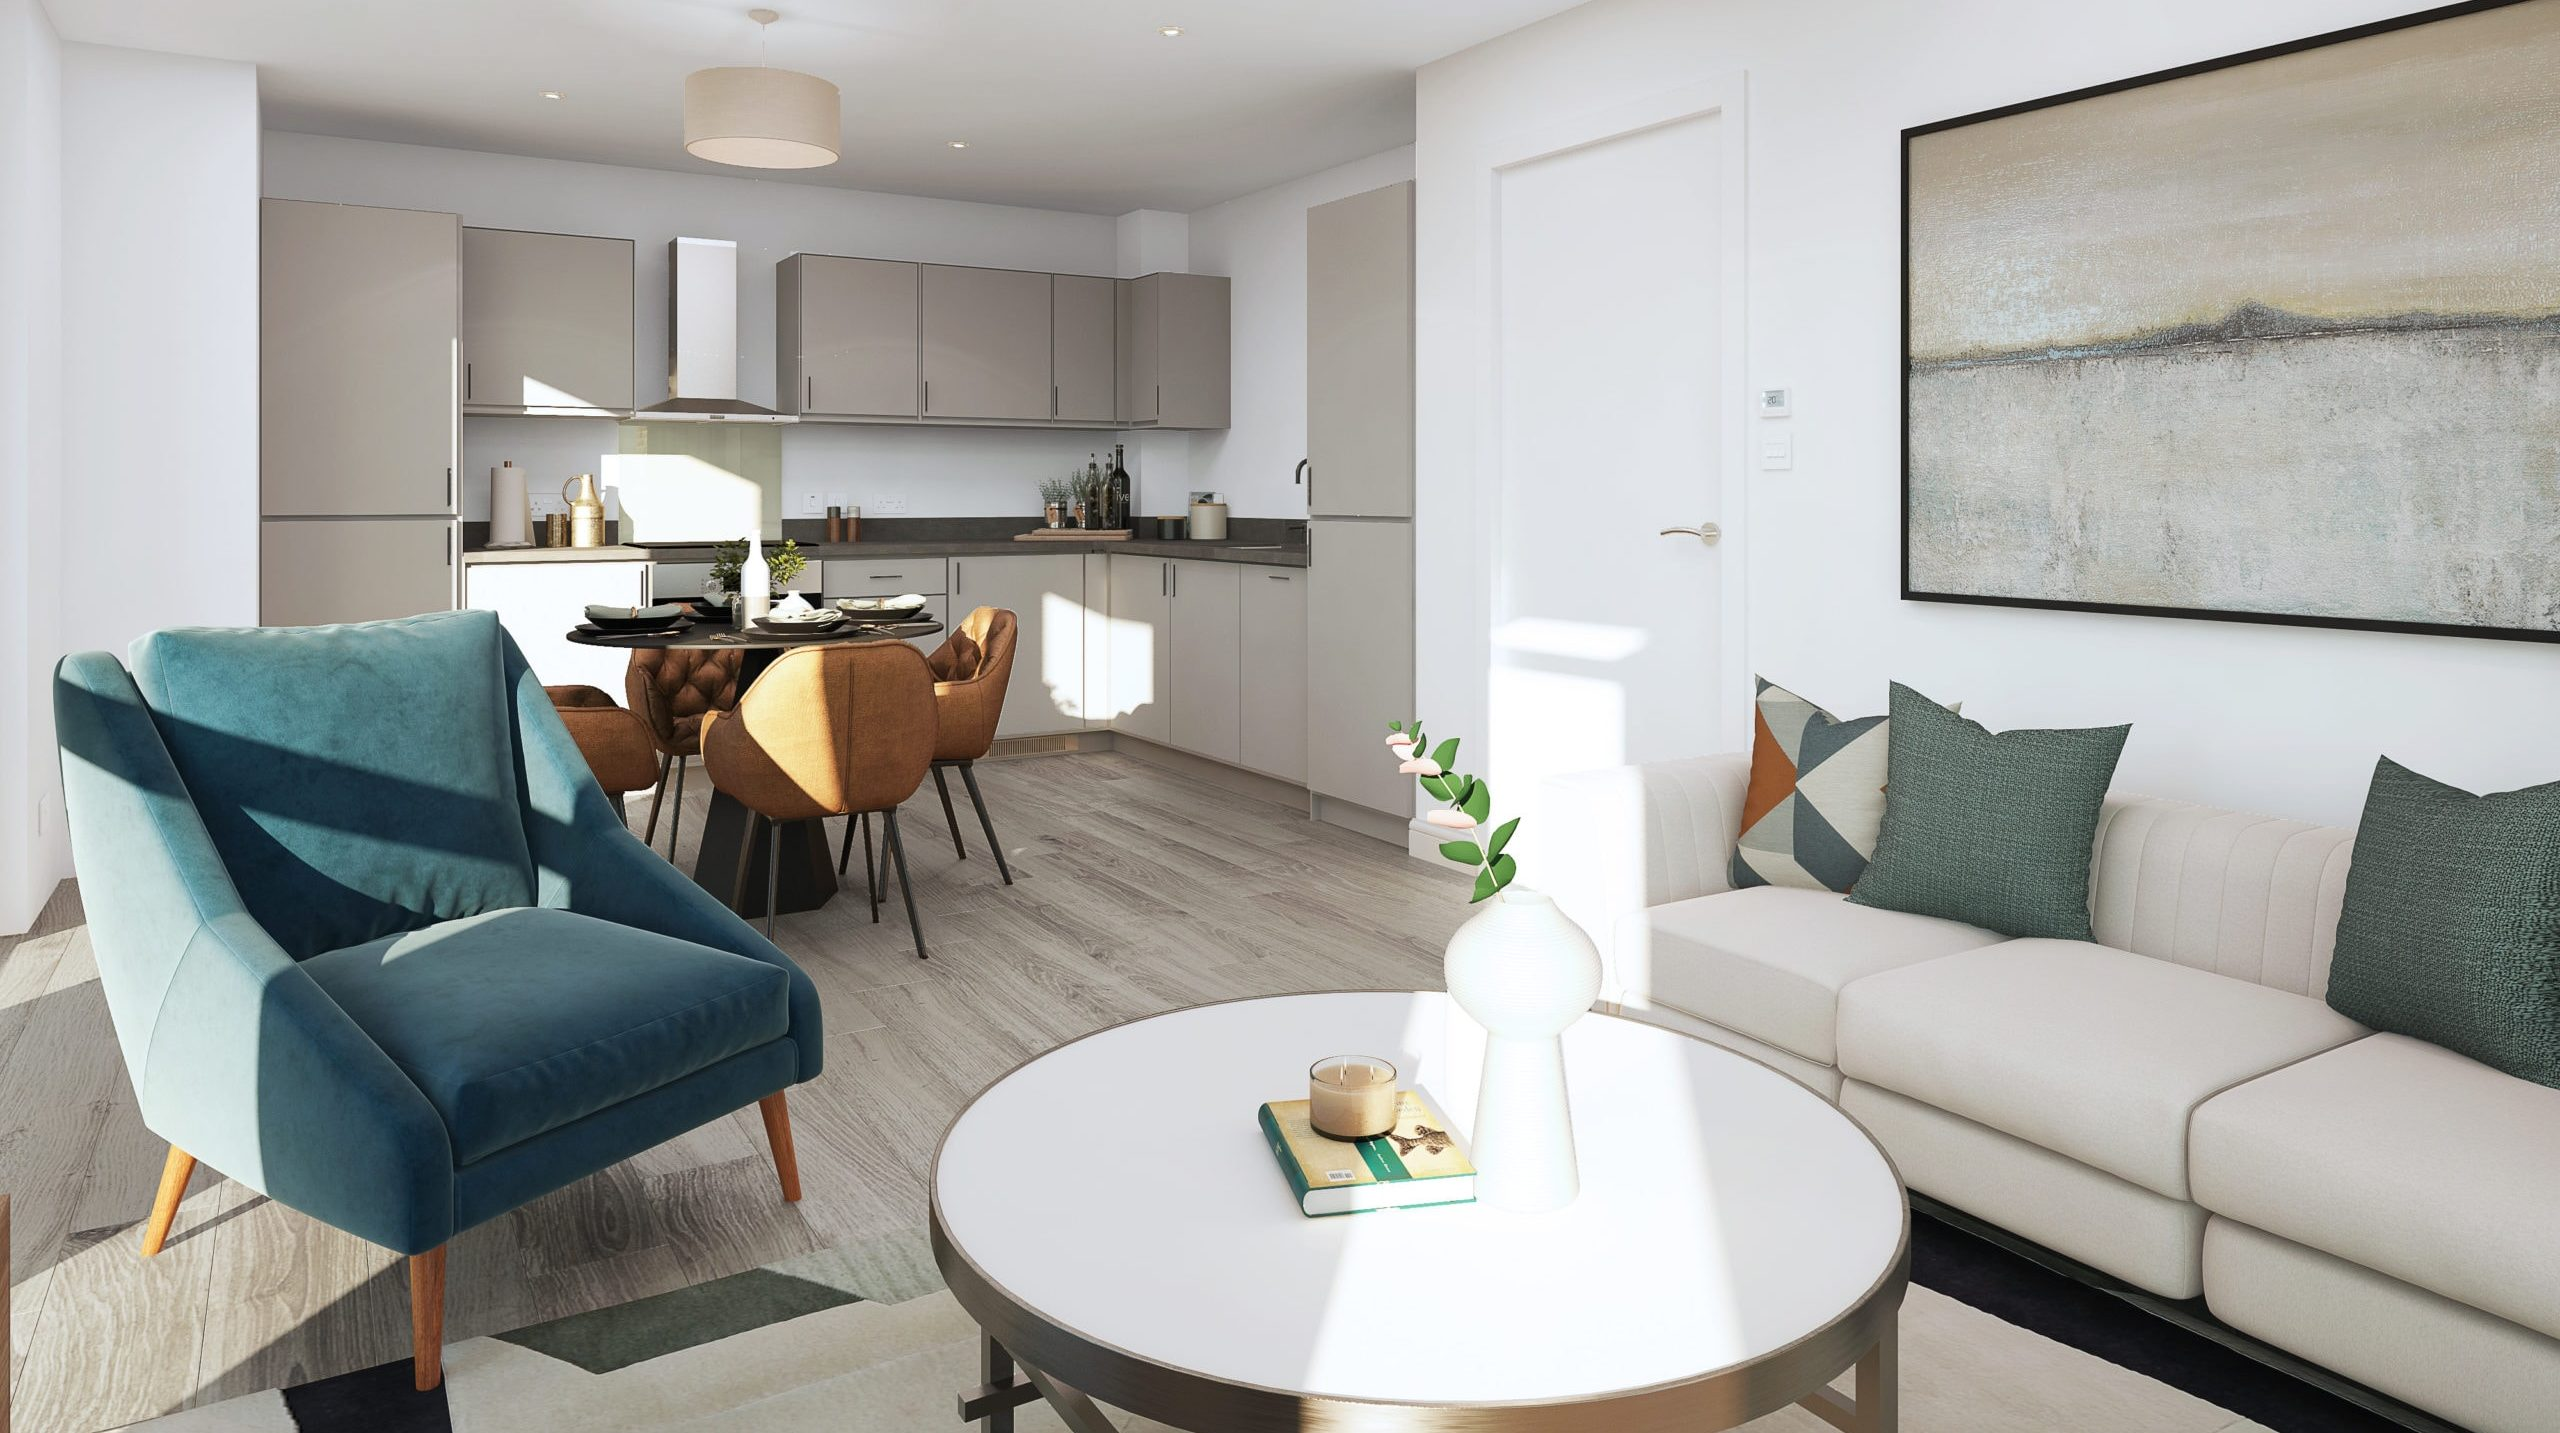 Internal show home photography of Catalyst's Newman Place - Shared Ownership homes available on Share to Buy